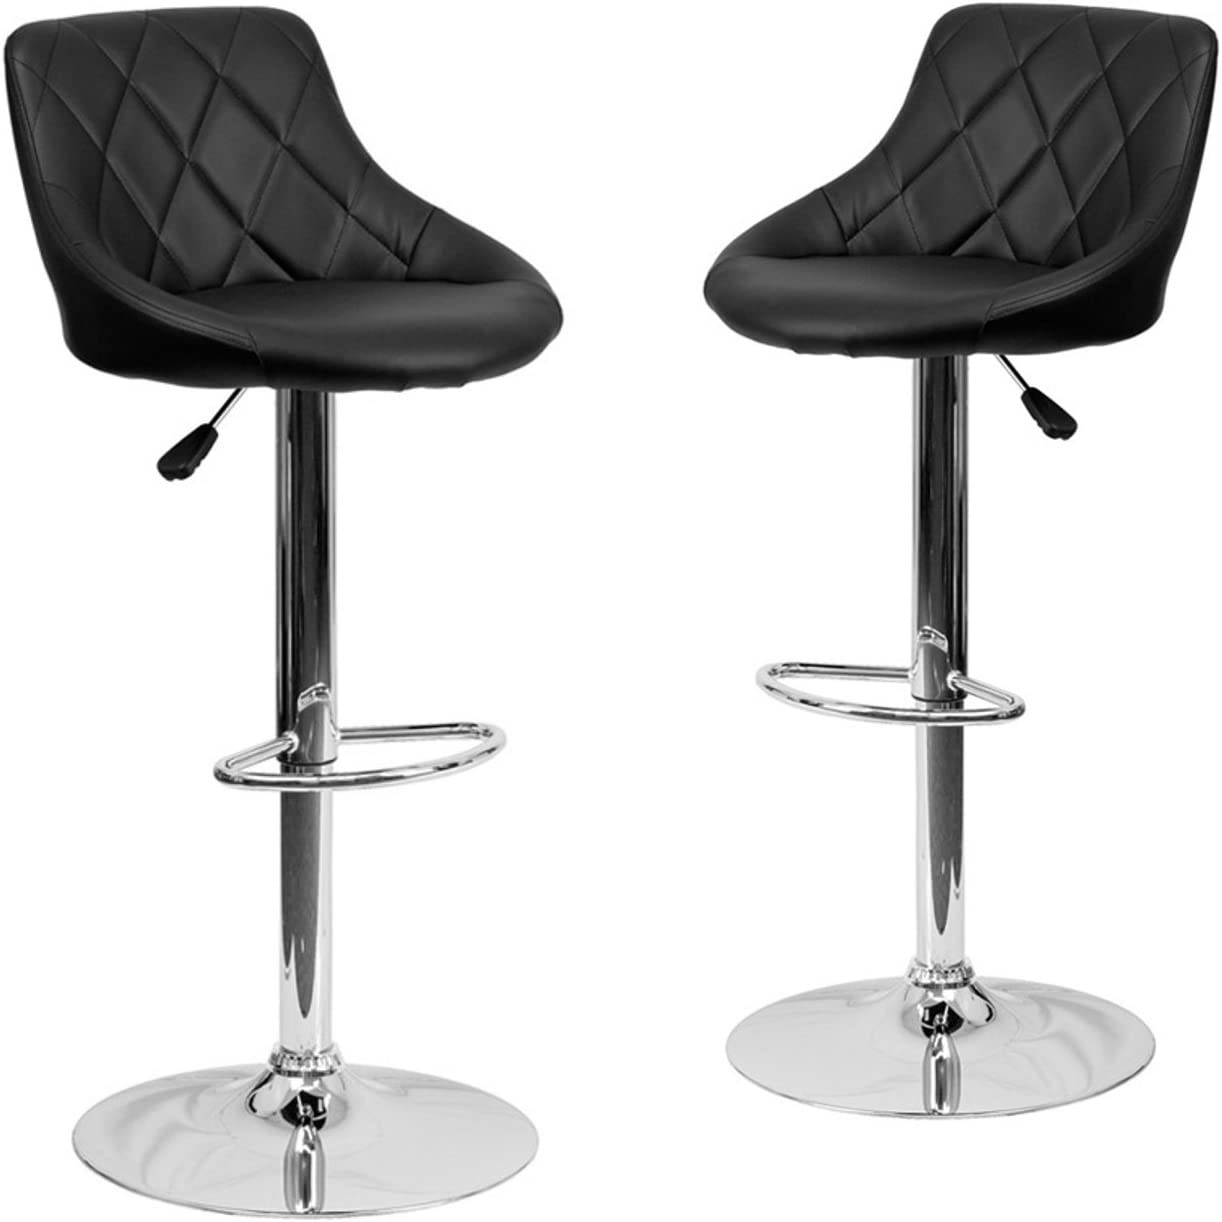 BELLEZE Set of 2 Black Faux Leather Bucket Seat Adjustable Barstool